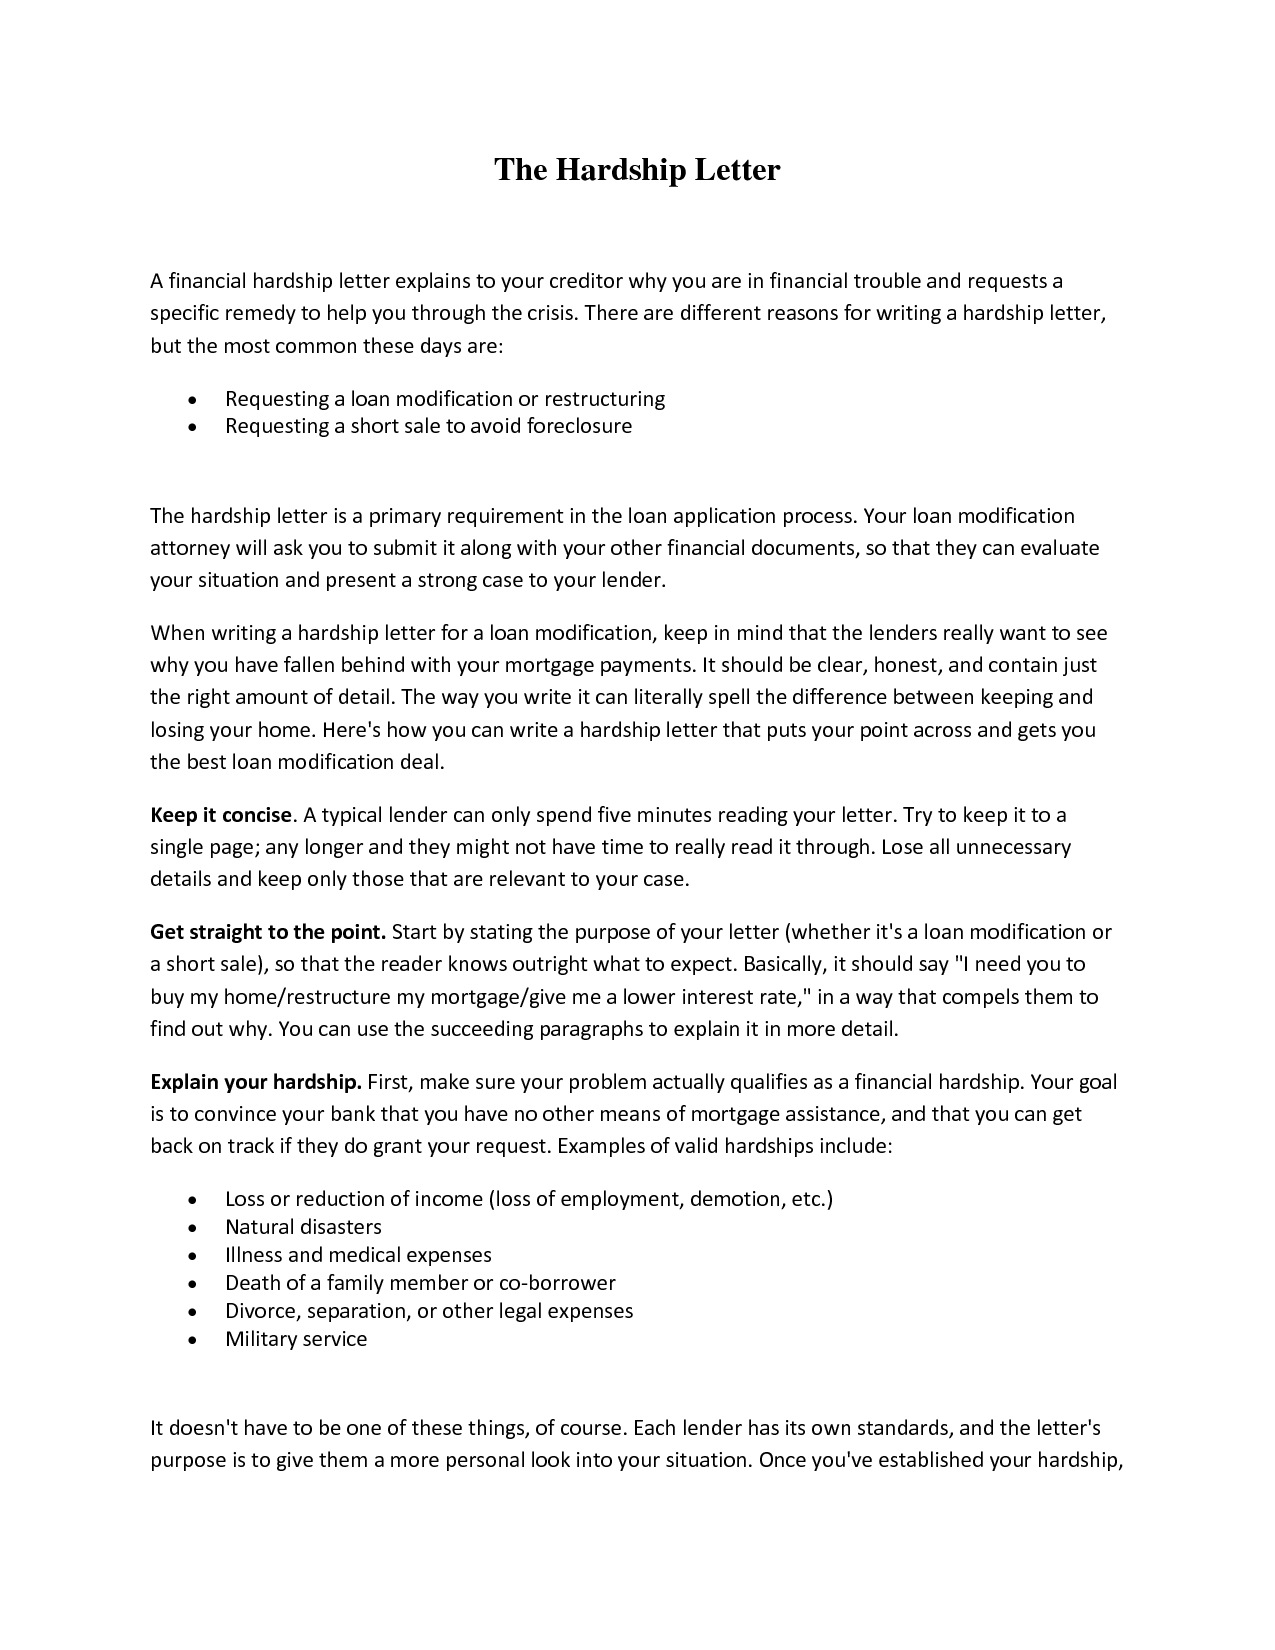 Short Sale Hardship Letter Template - How to Write A Hardship Letter for A Short Sale Letter